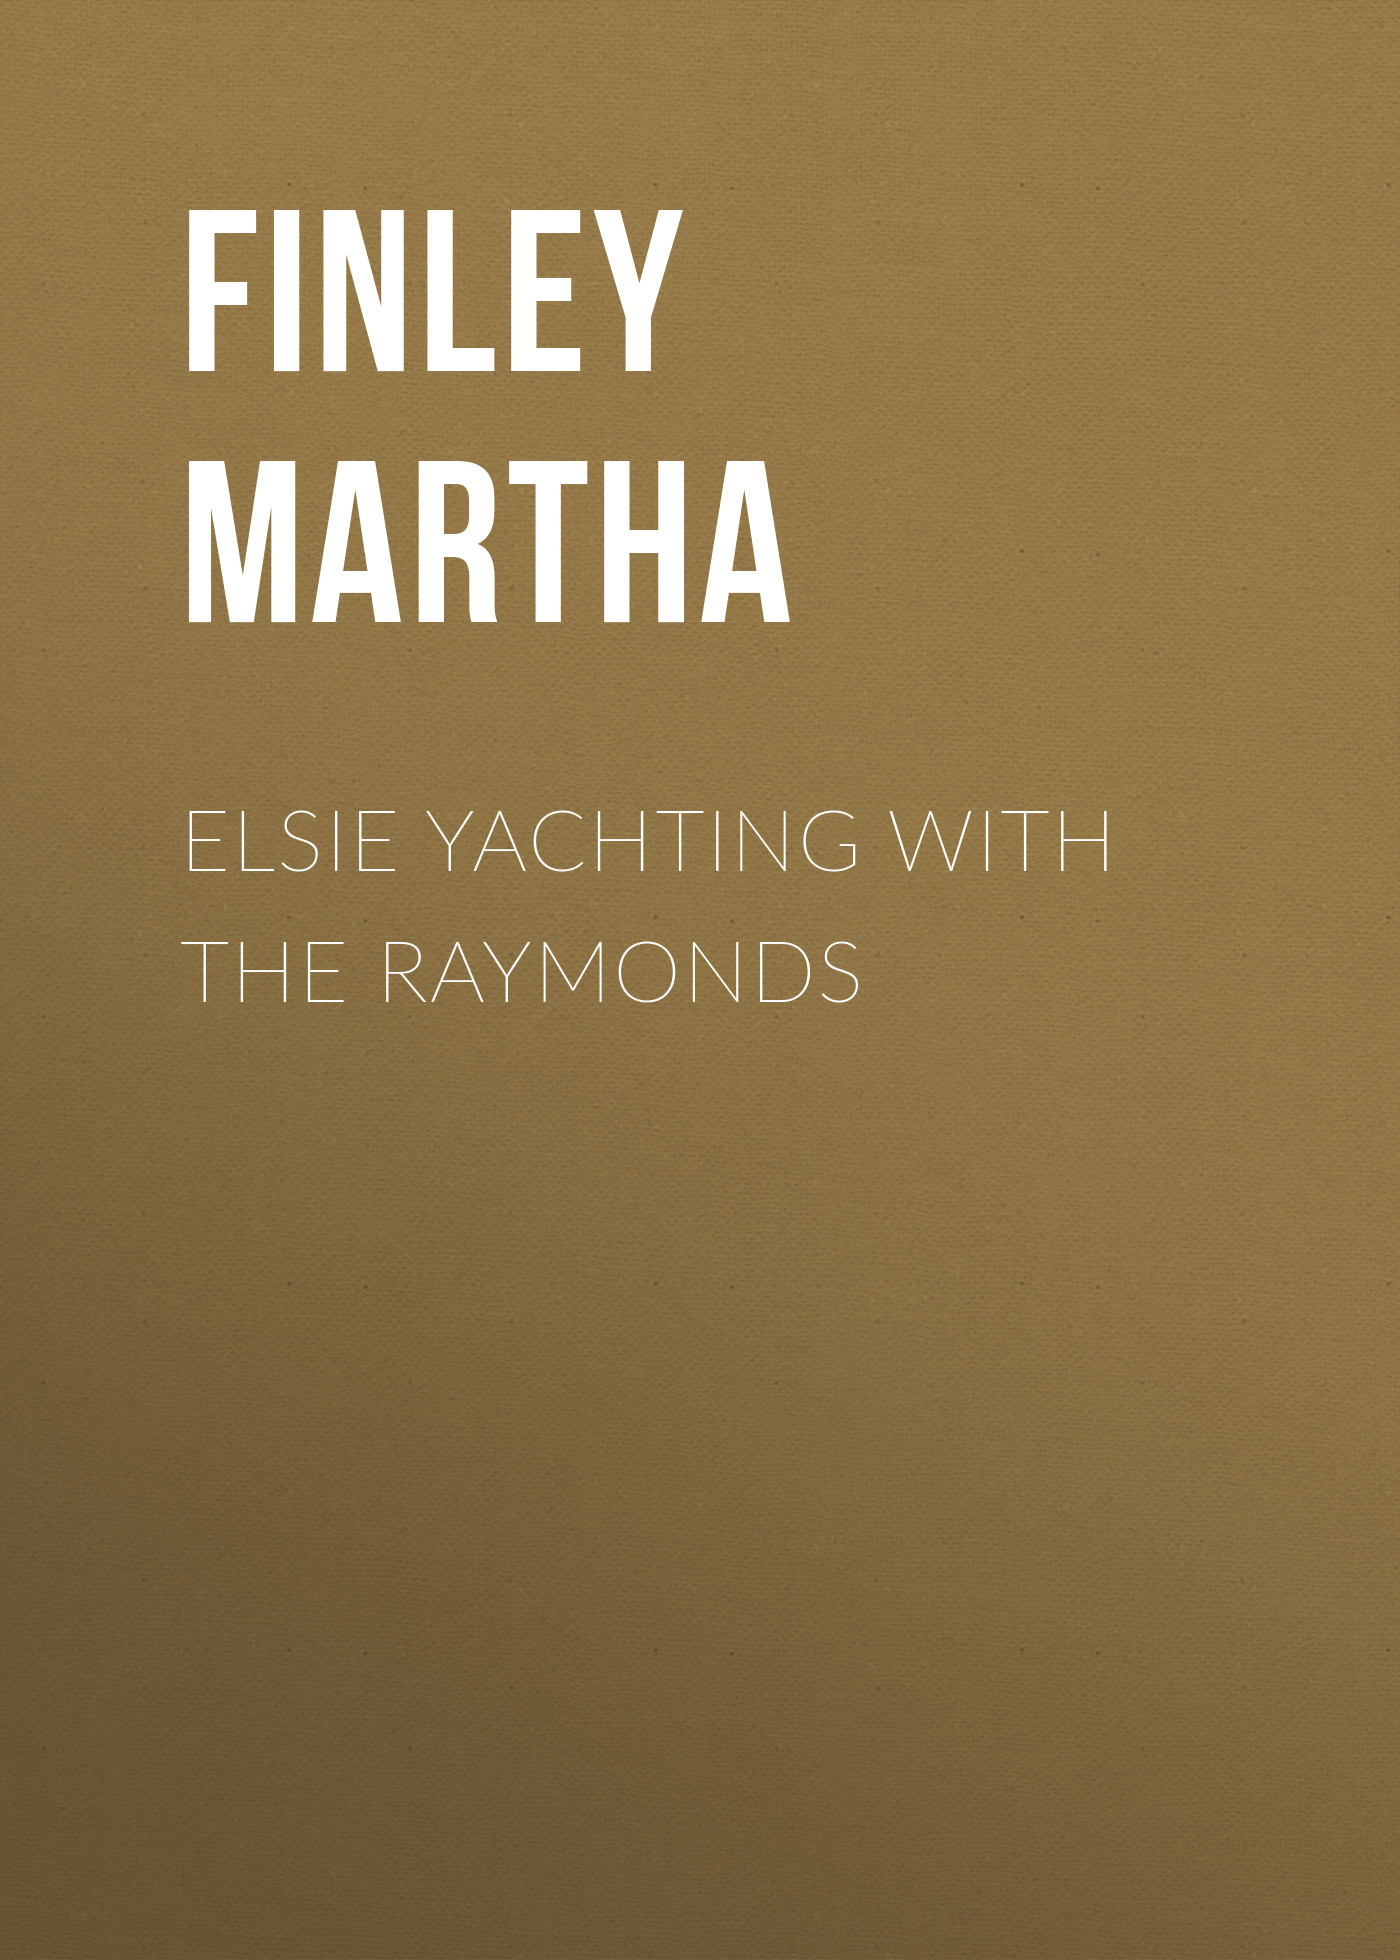 лучшая цена Finley Martha Elsie Yachting with the Raymonds